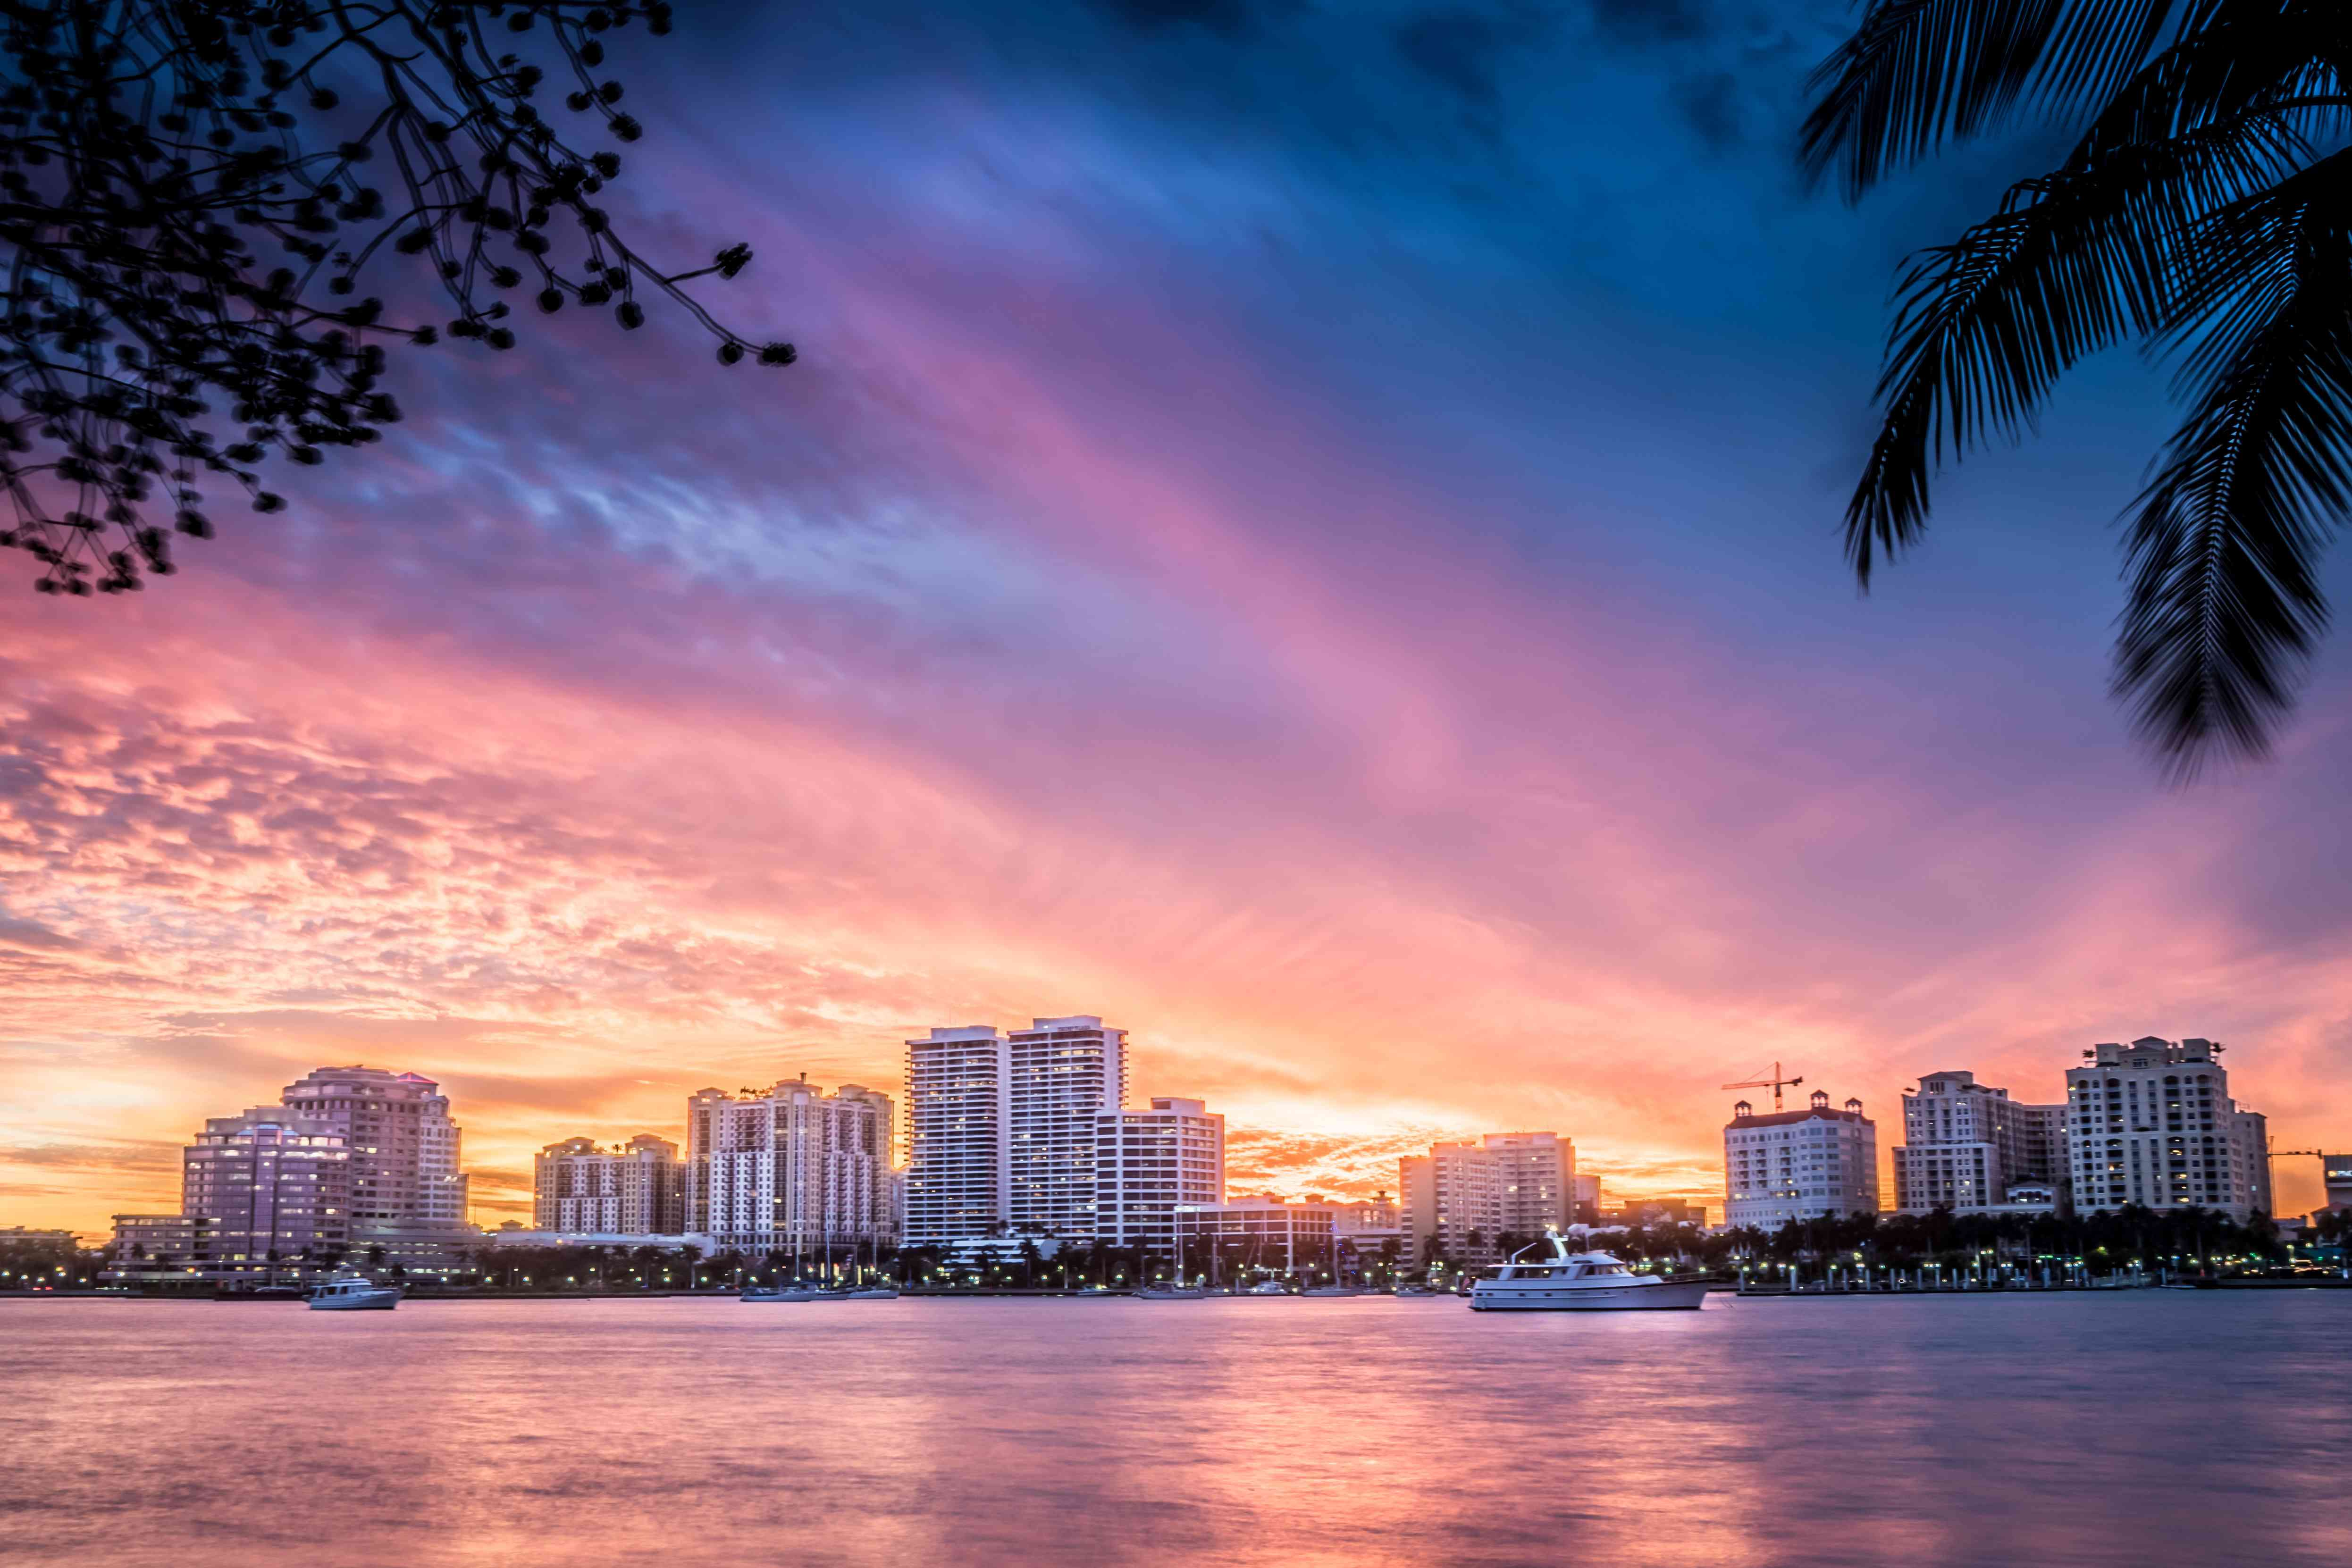 City At Waterfront During Sunset with pinkish skies reflected in the water